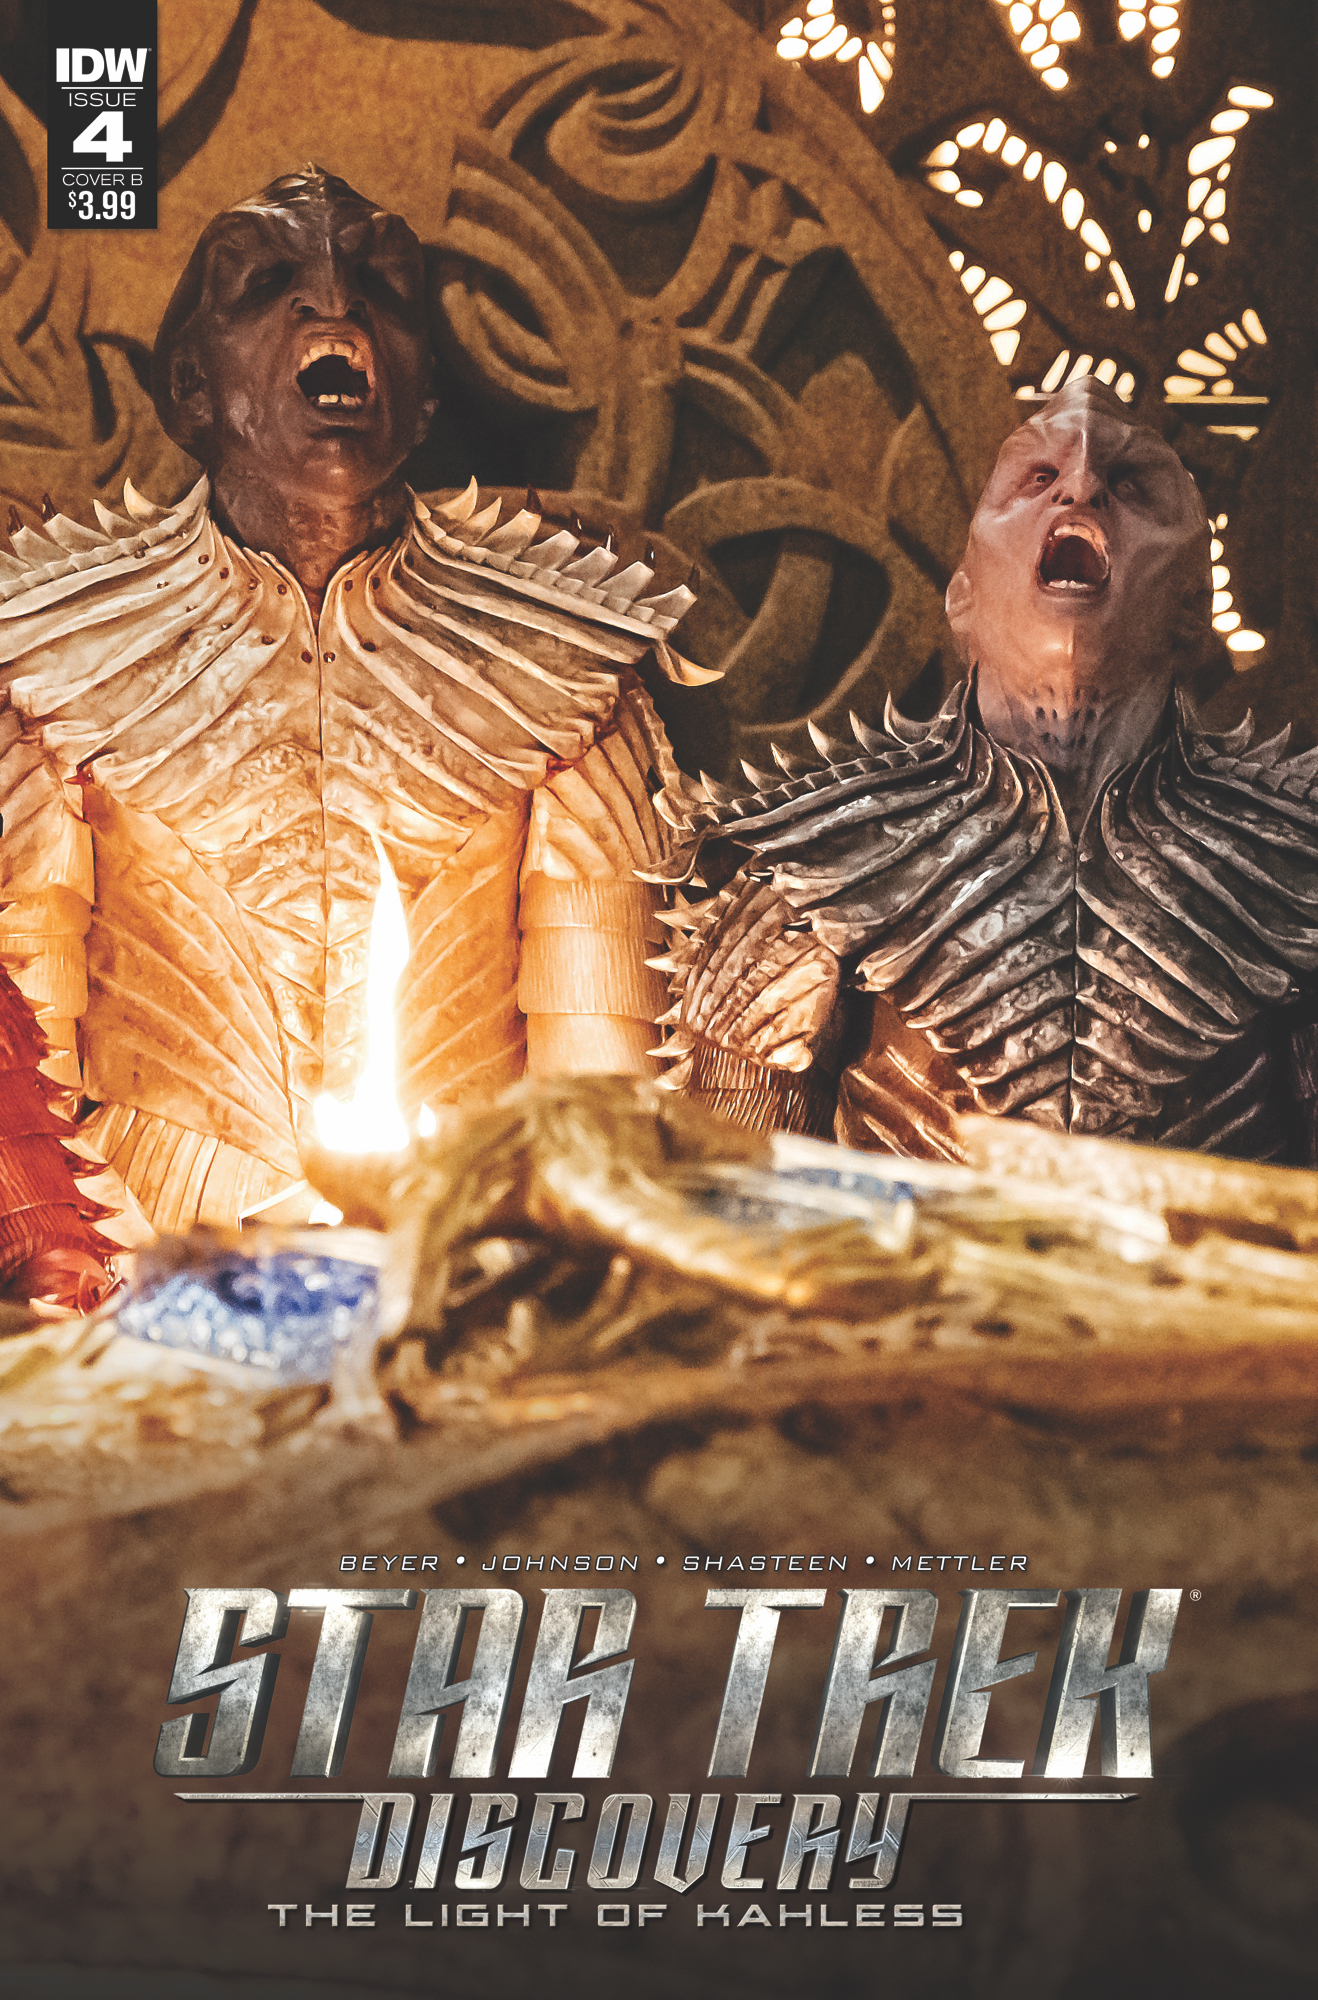 STAR TREK DISCOVERY #4 CVR B PHOTO